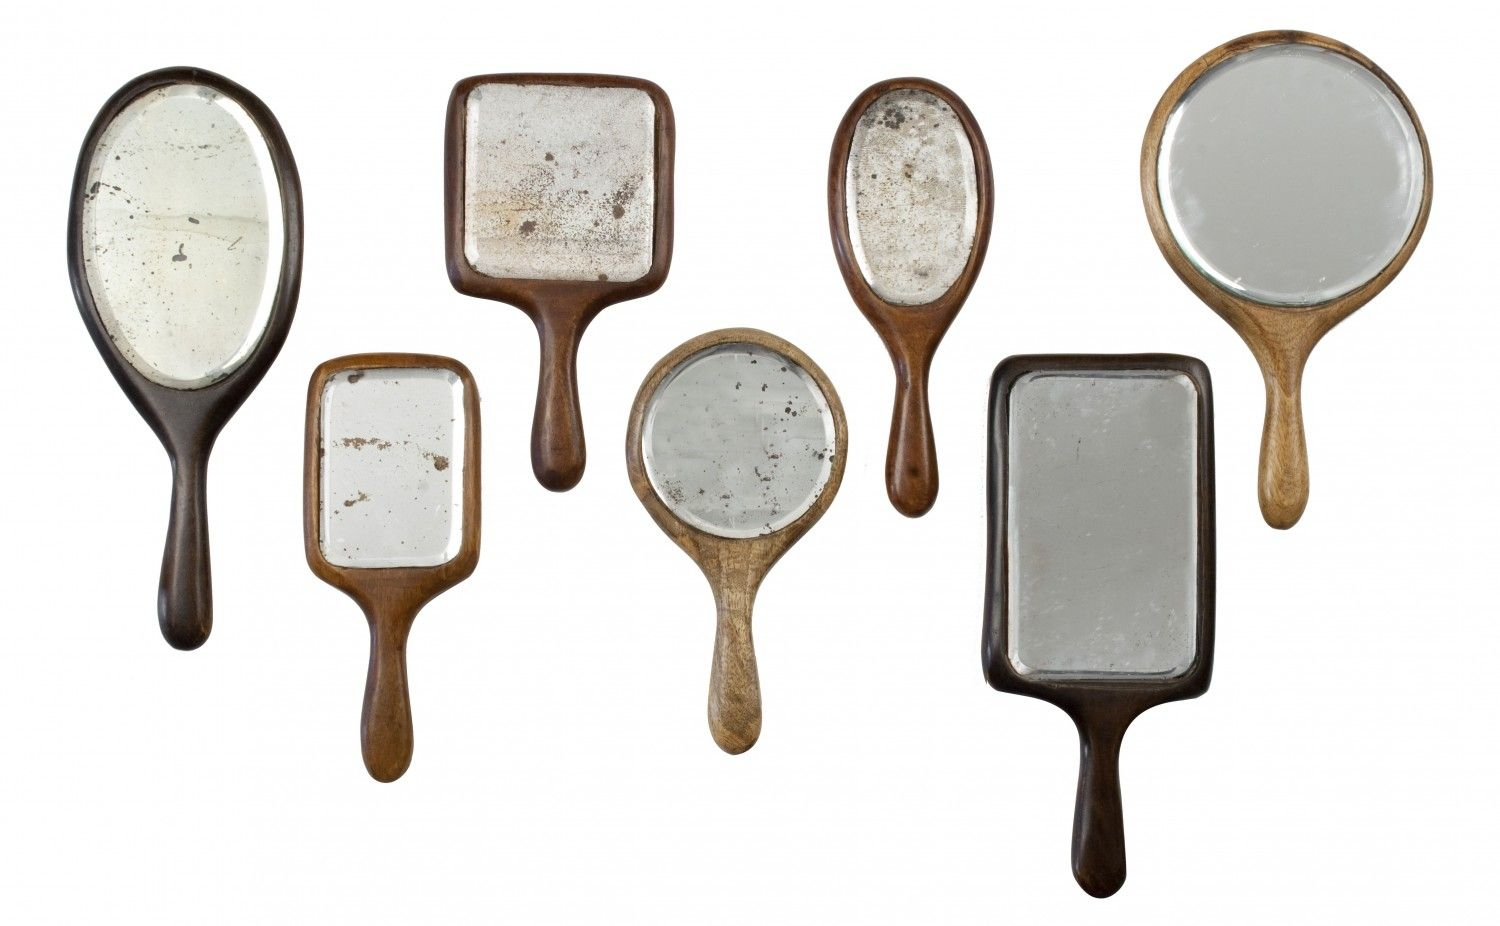 Antiqued Hand Mirrors -- hang on wall in group